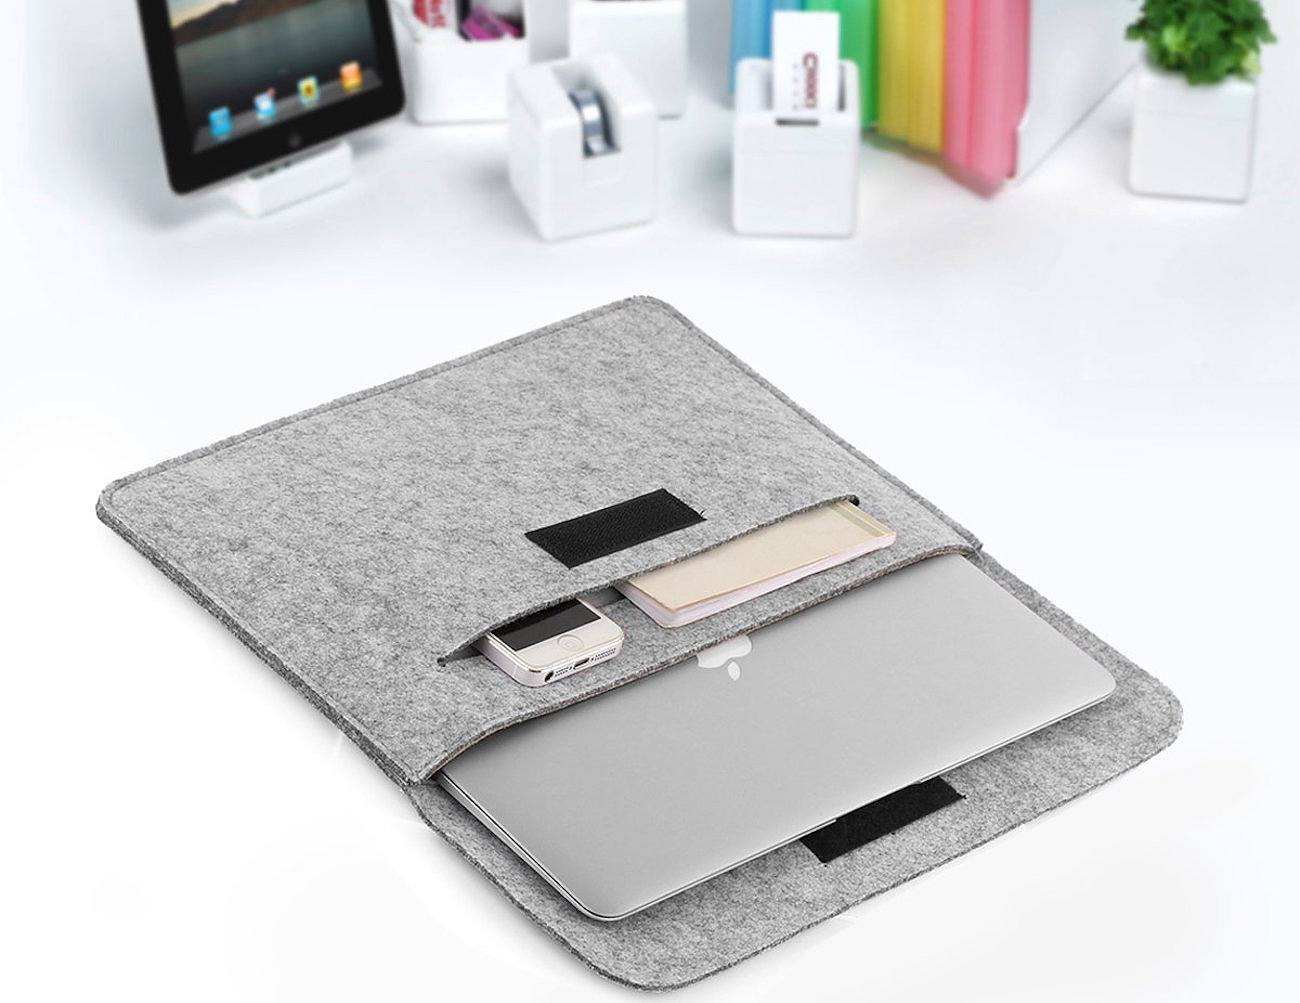 Felt+Carrying+Sleeve+For+MacBook+By+OURAI